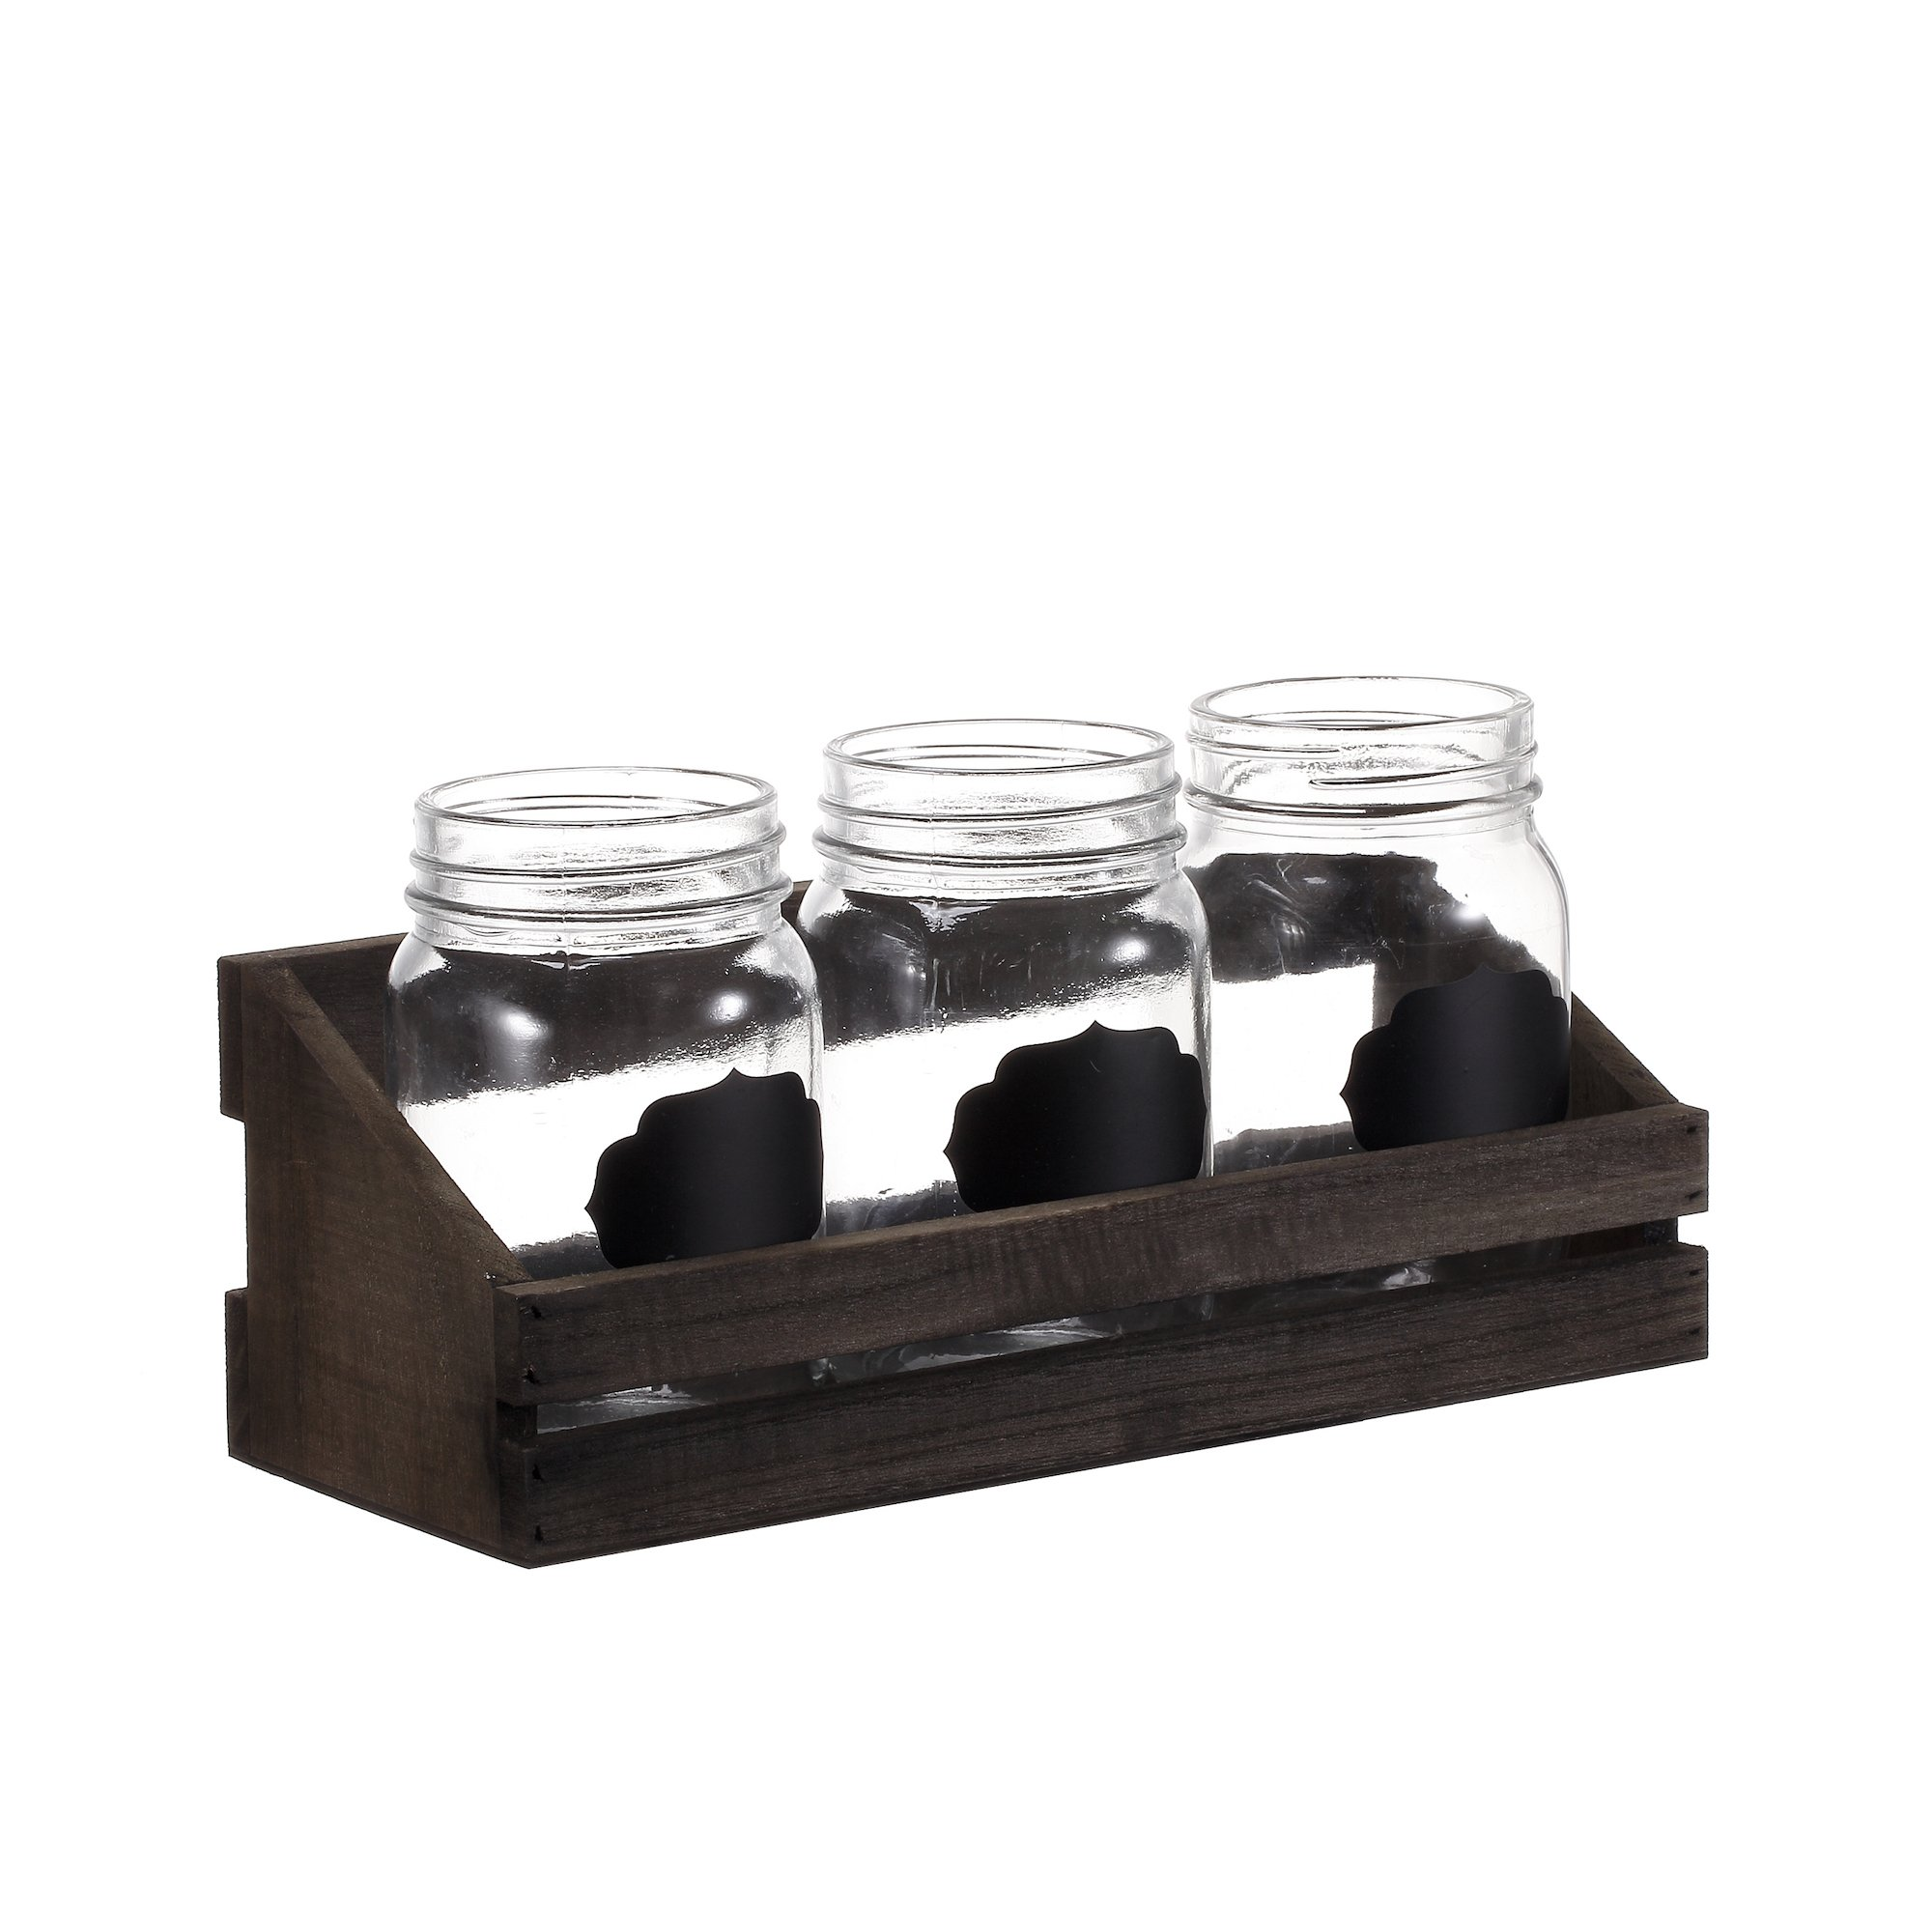 V-More Bud Vase with Chicken Wire Basket V-More Rustic Glass Mason Jar with Chalkboard Label and Wooden Tray 6.5-inch Tall For Home Decor Wedding Party Celebration by V-More Bud Vase with Chicken Wire Basket (Image #3)